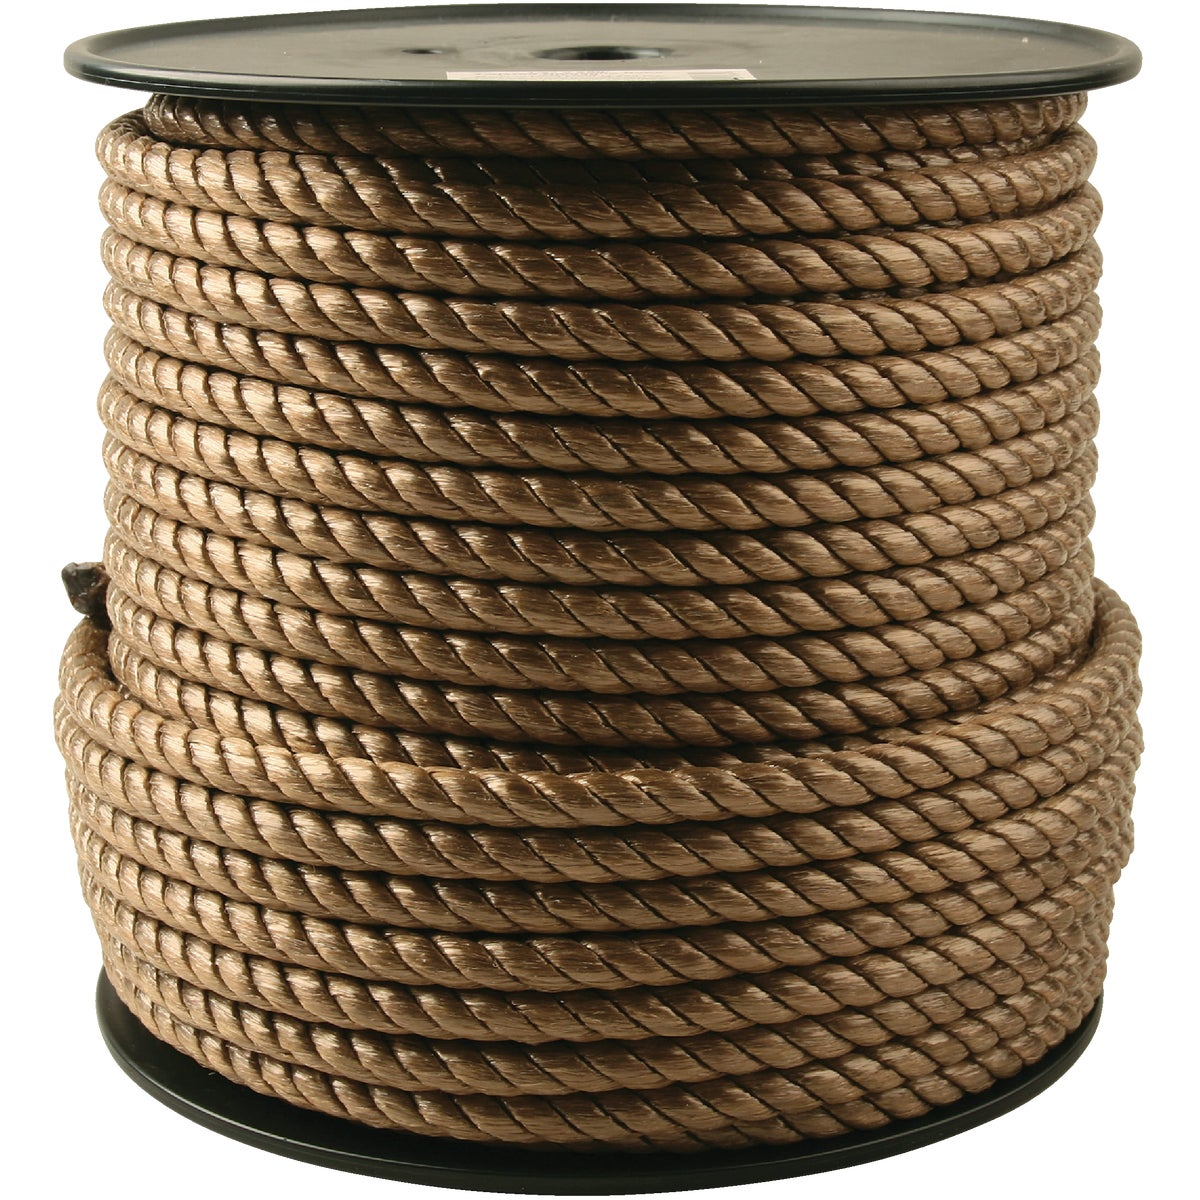 "1/2""X250' UNMANILA ROPE - 707449 by Do it Best"